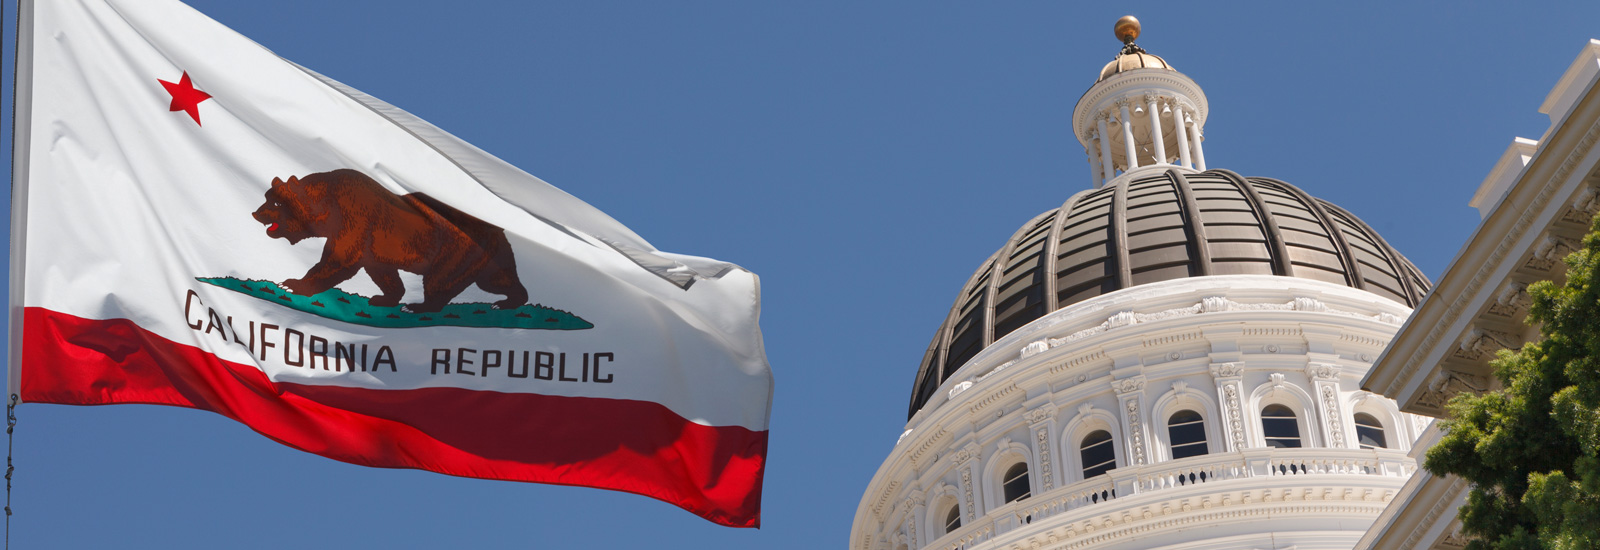 Capital Building and the California flag